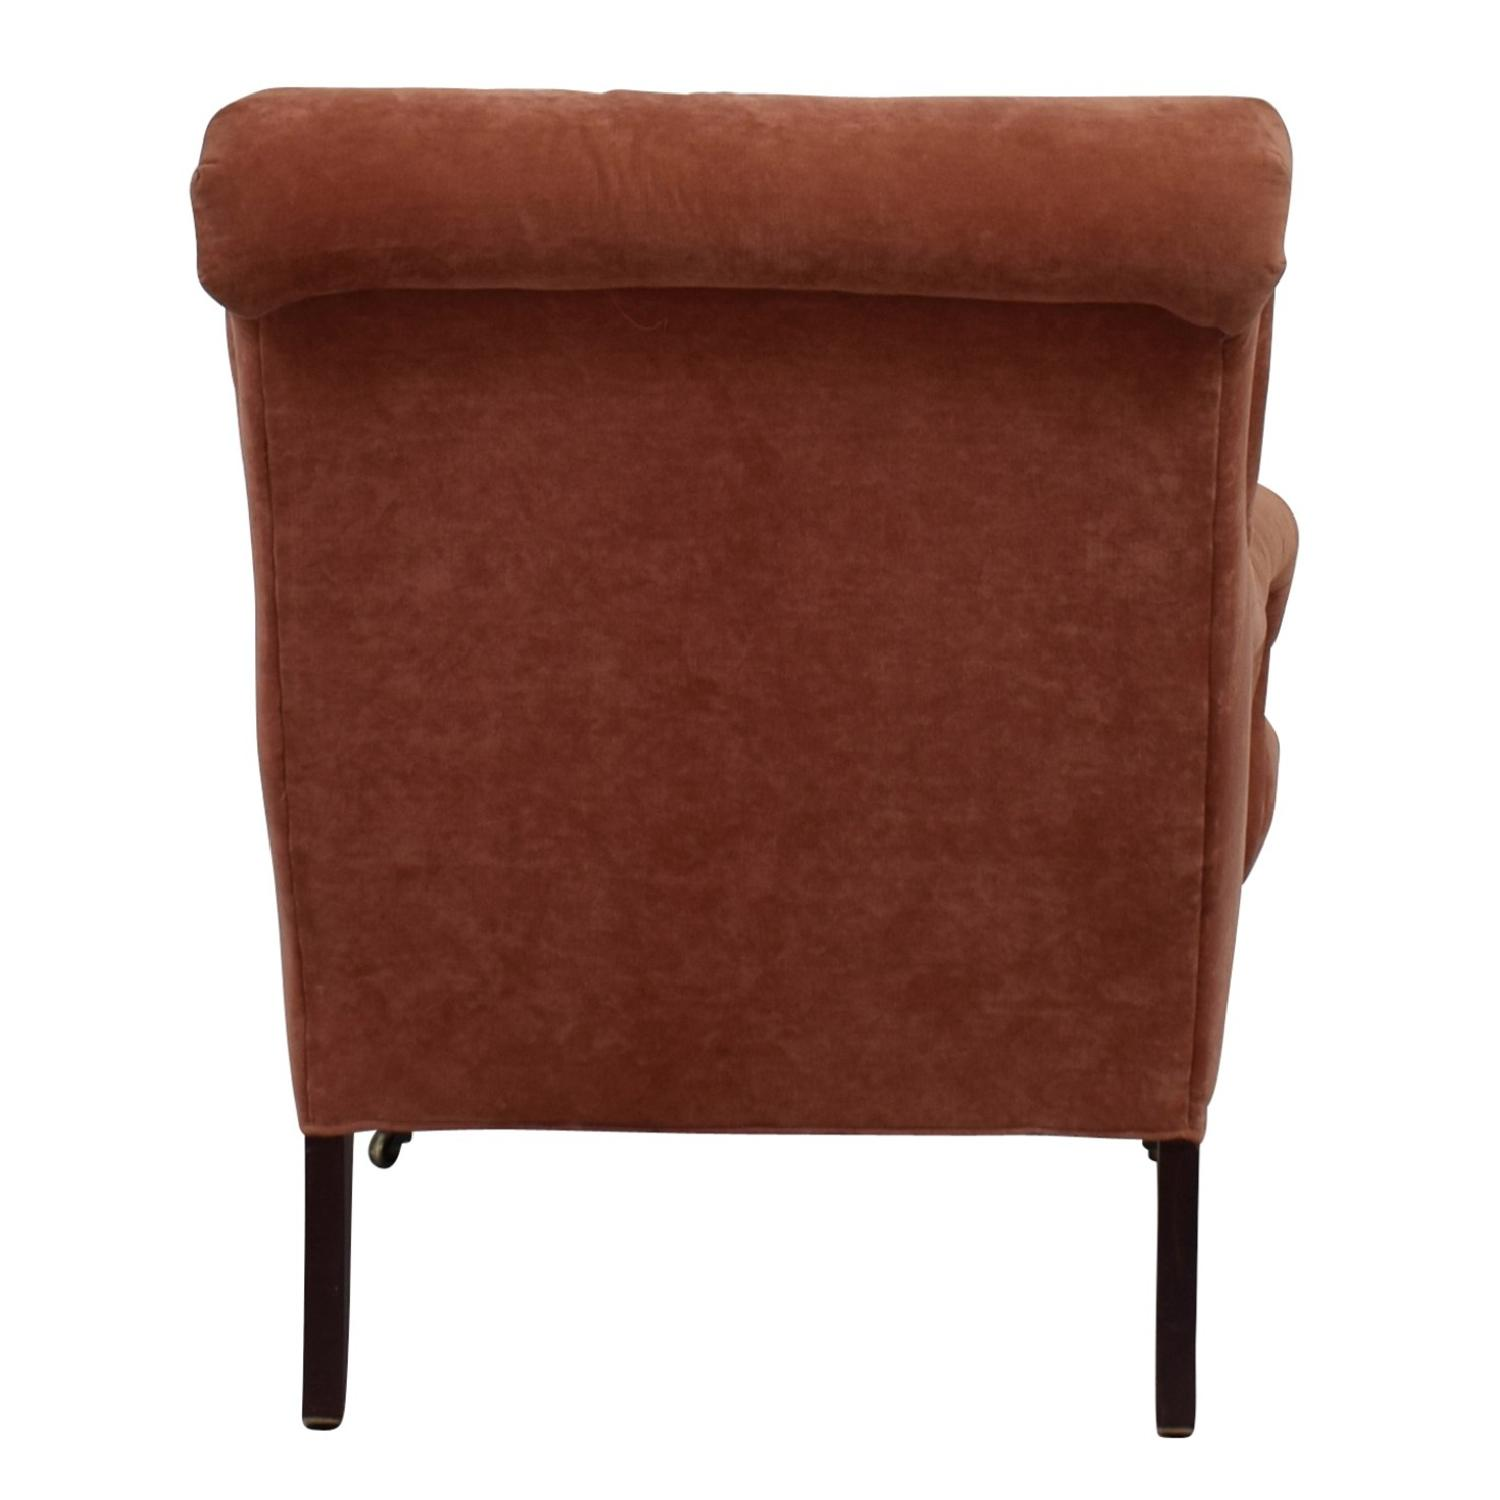 Kathy Pink Arm Chair w/ Castors - image-2